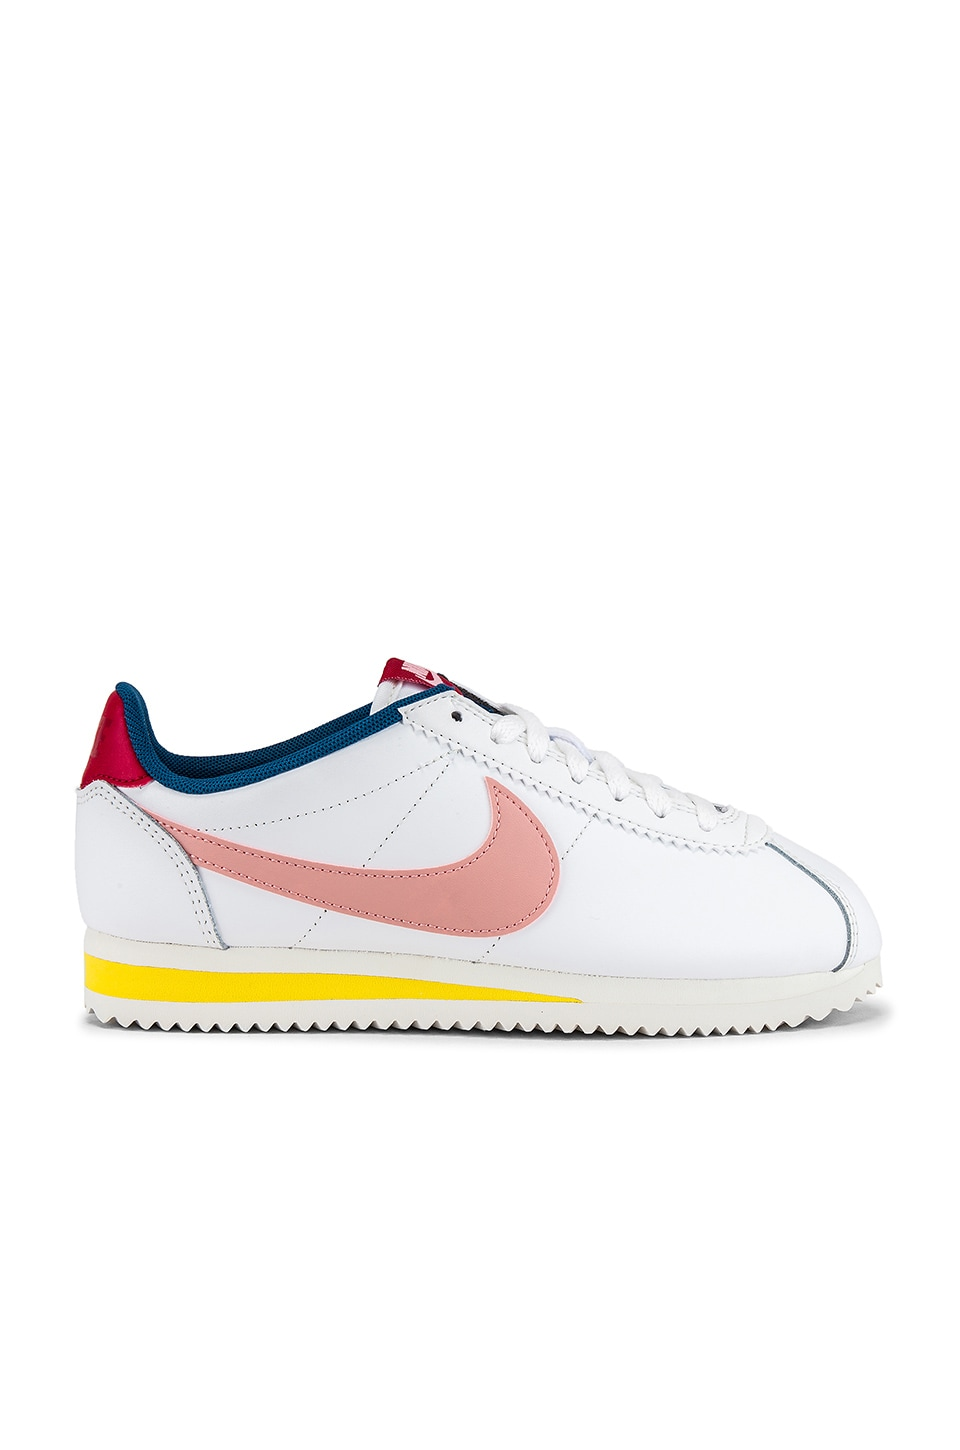 Nike Classic Cortez Leather Sneaker in Summit White, Coral Stardust, Gym Red & Chrome Yellow